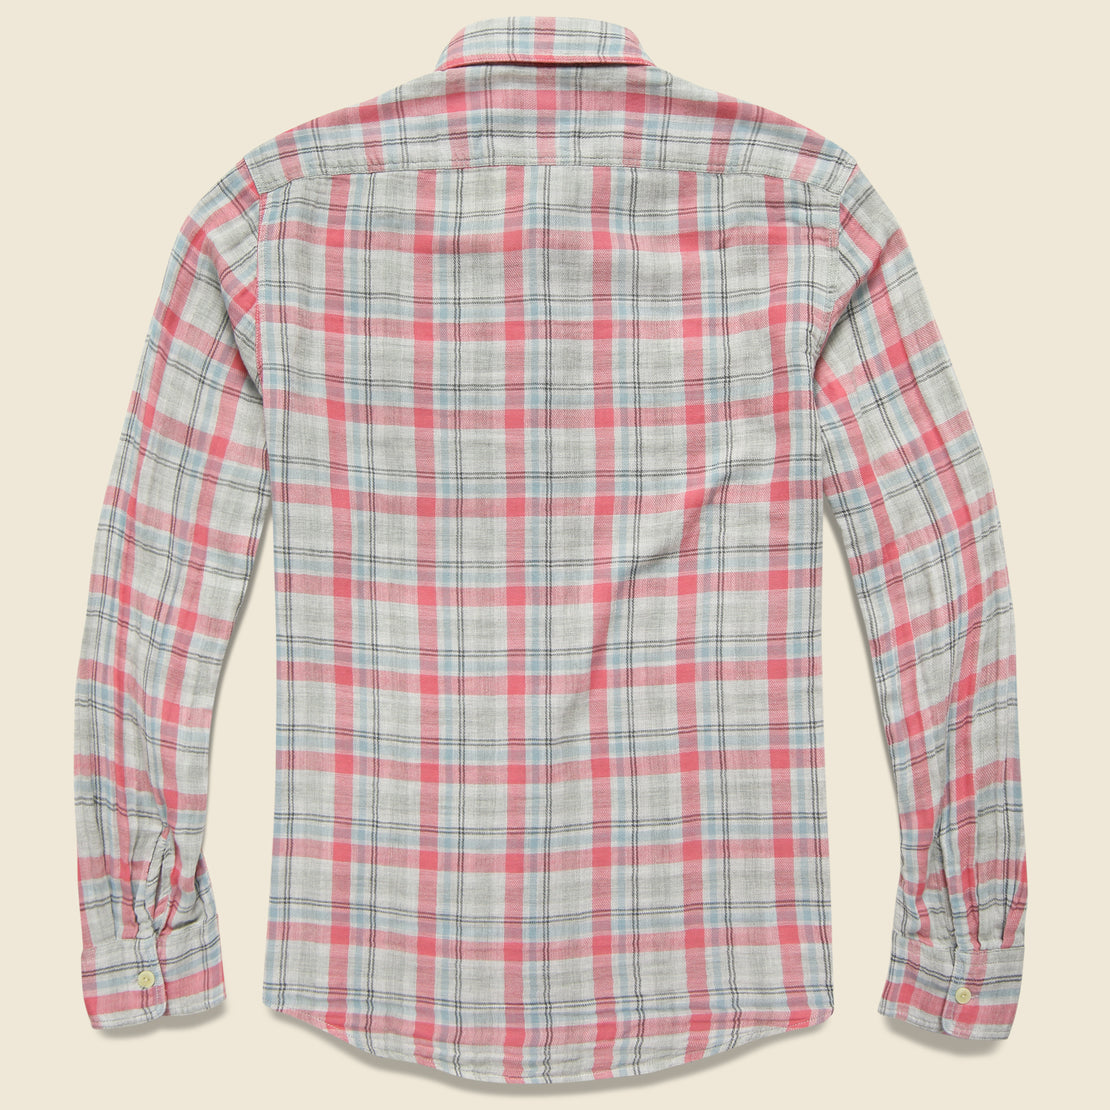 Mason Double Cloth Shirt - Salmon/Blue/Grey